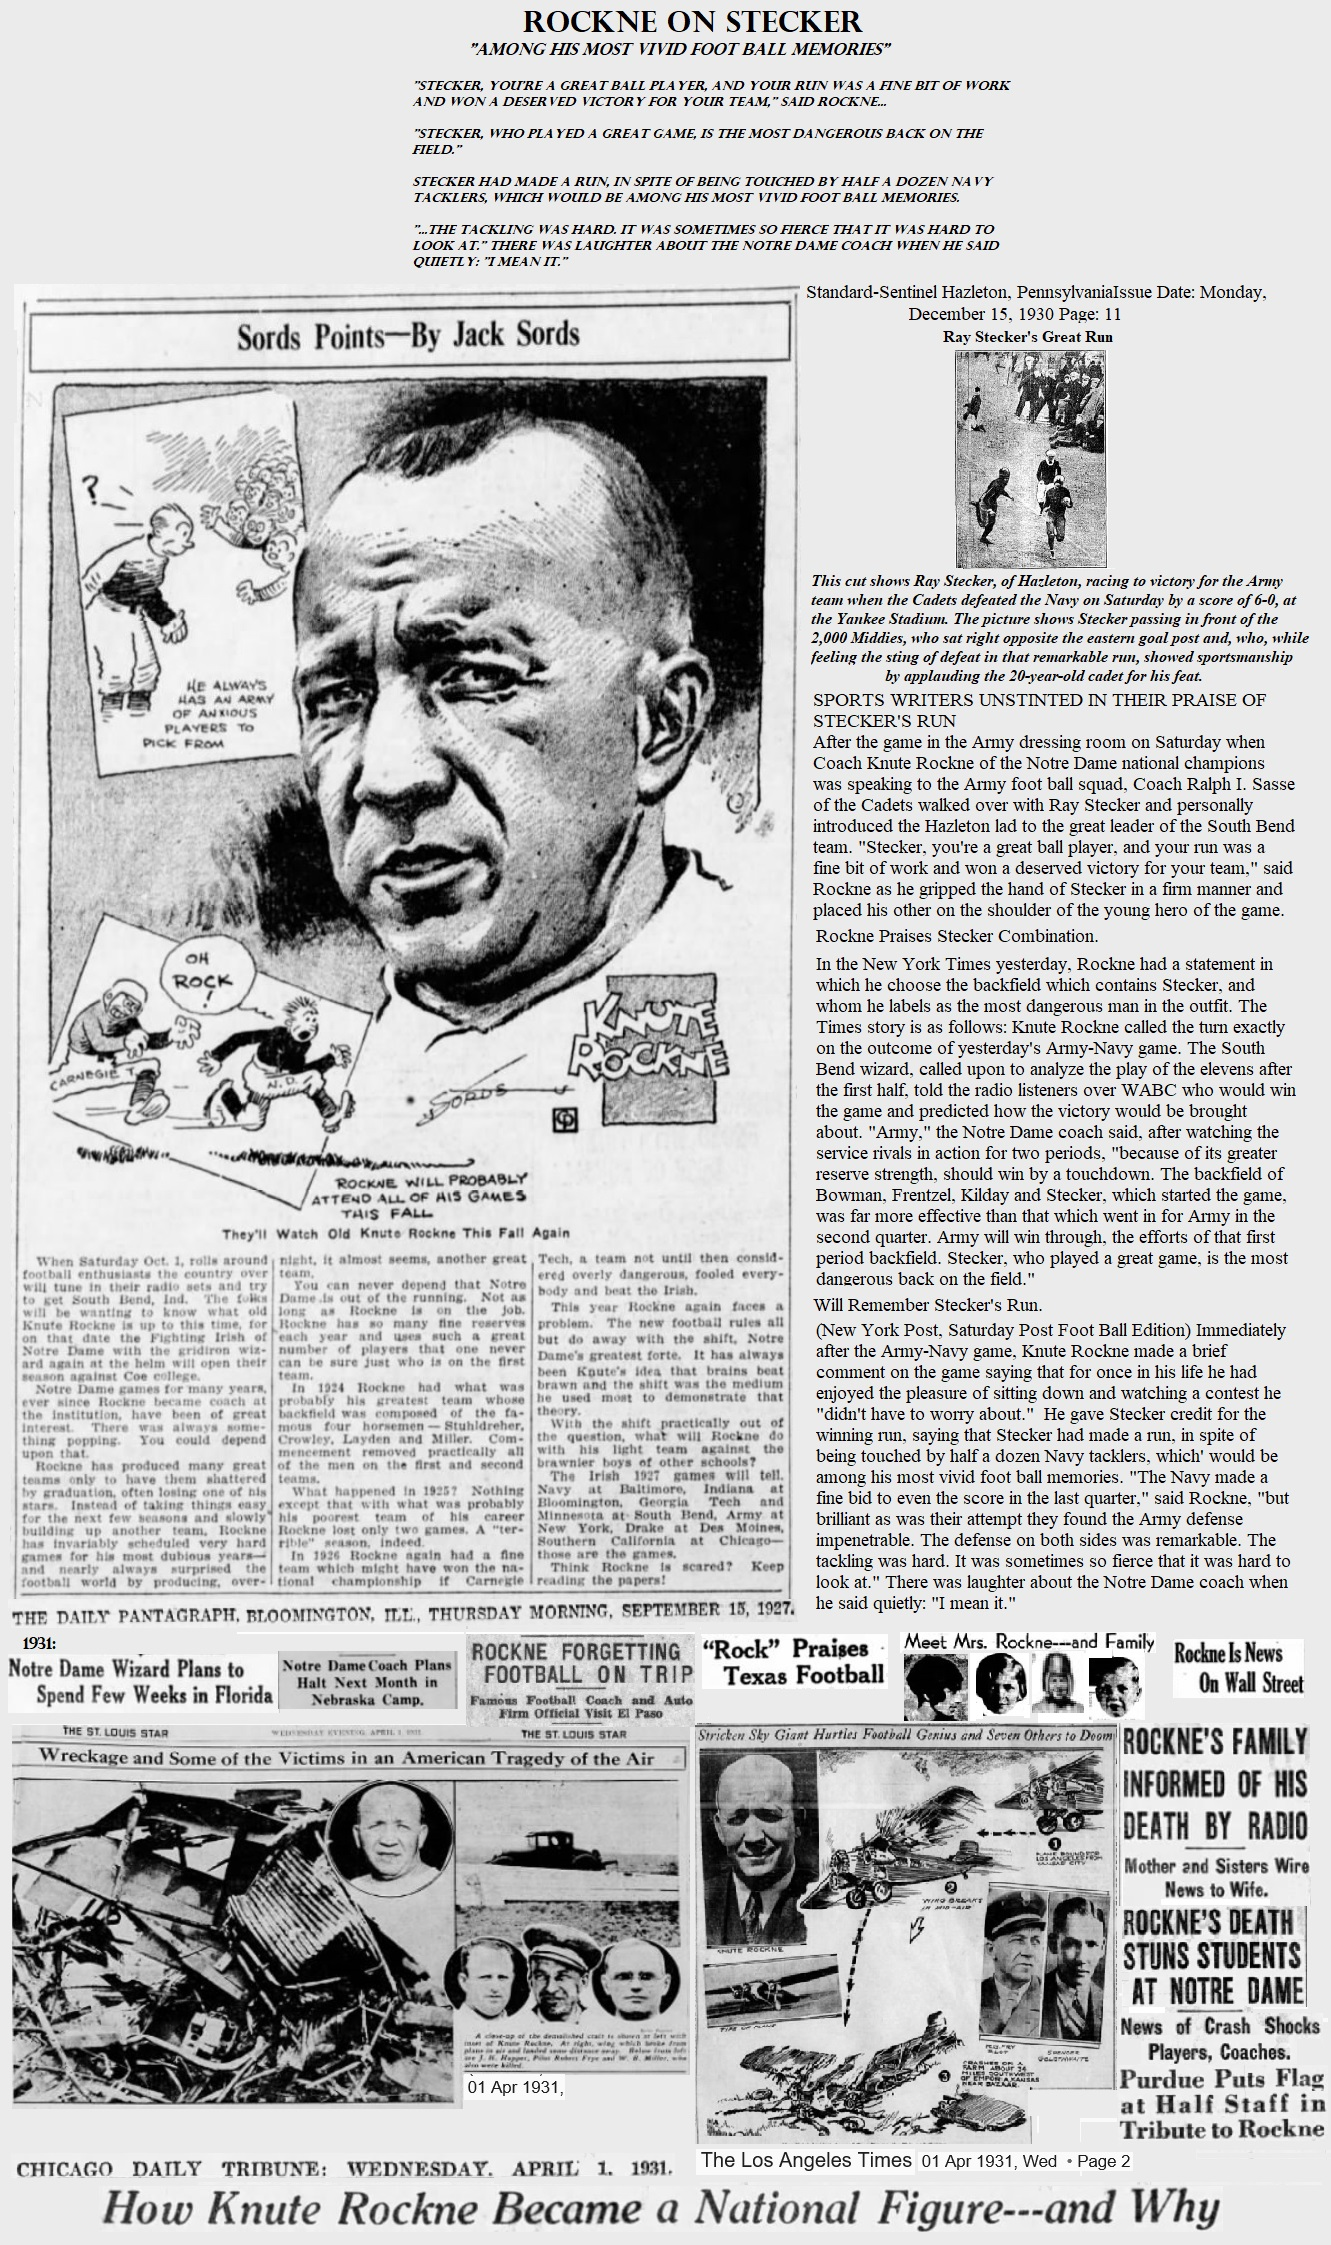 knuterockne_byjacksords_pantagraphbloomingtonill_sep151927